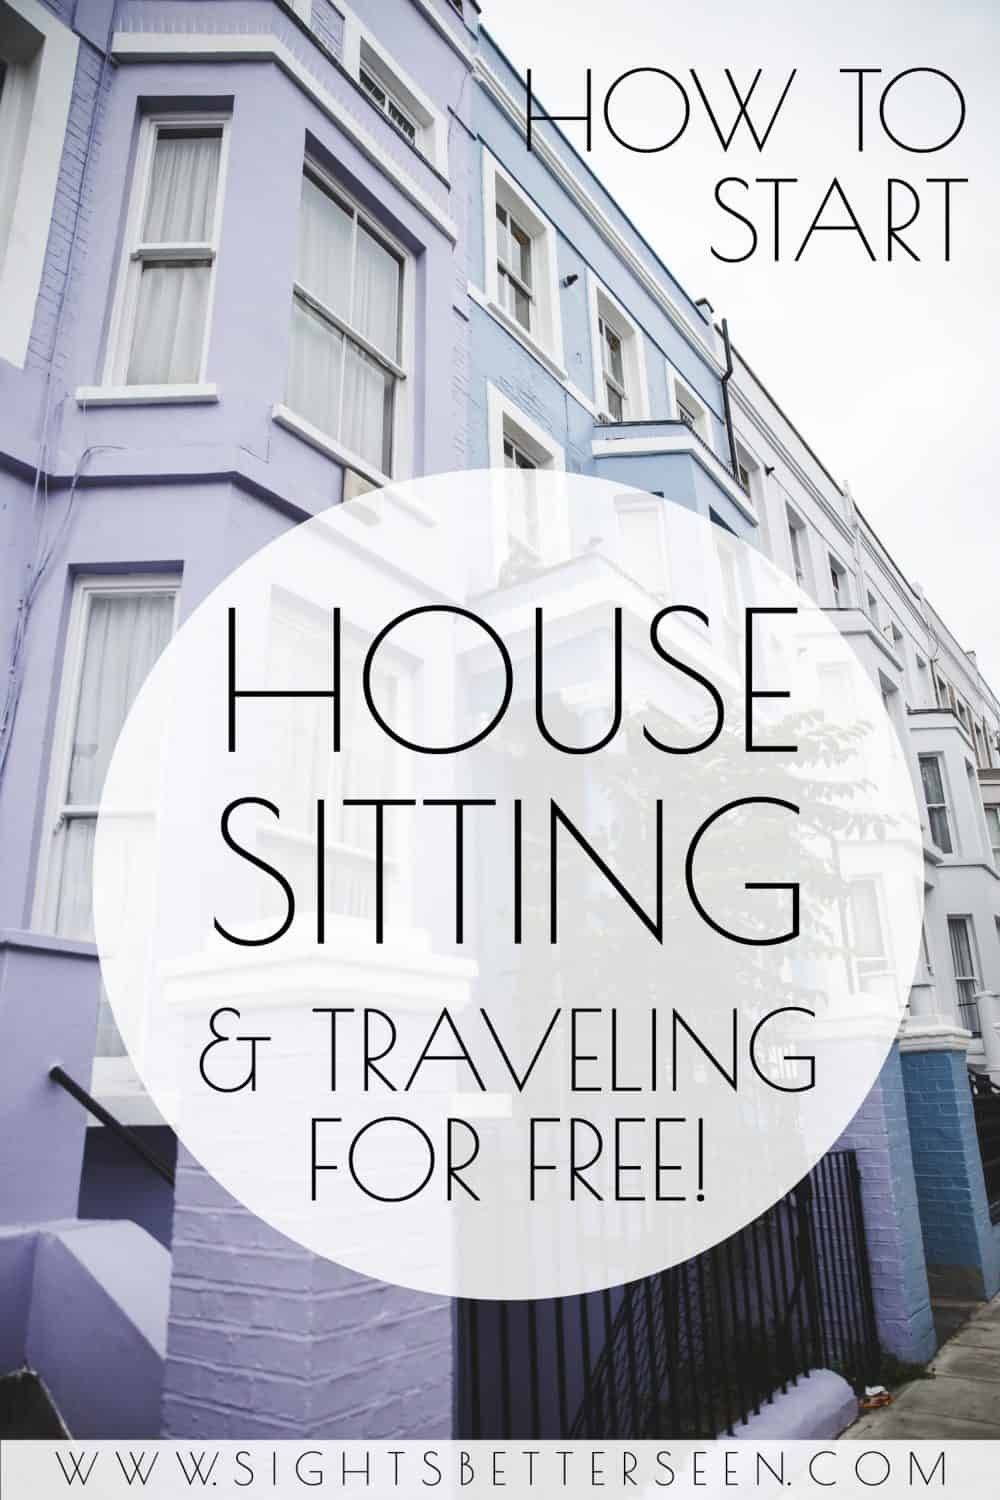 How to start house sitting and getting free accommodation when you travel! There are lots of house sitting jobs out there - I personally use Trusted Housesitters to find house sits in places like England, Australia, the USA, Europe, and more!